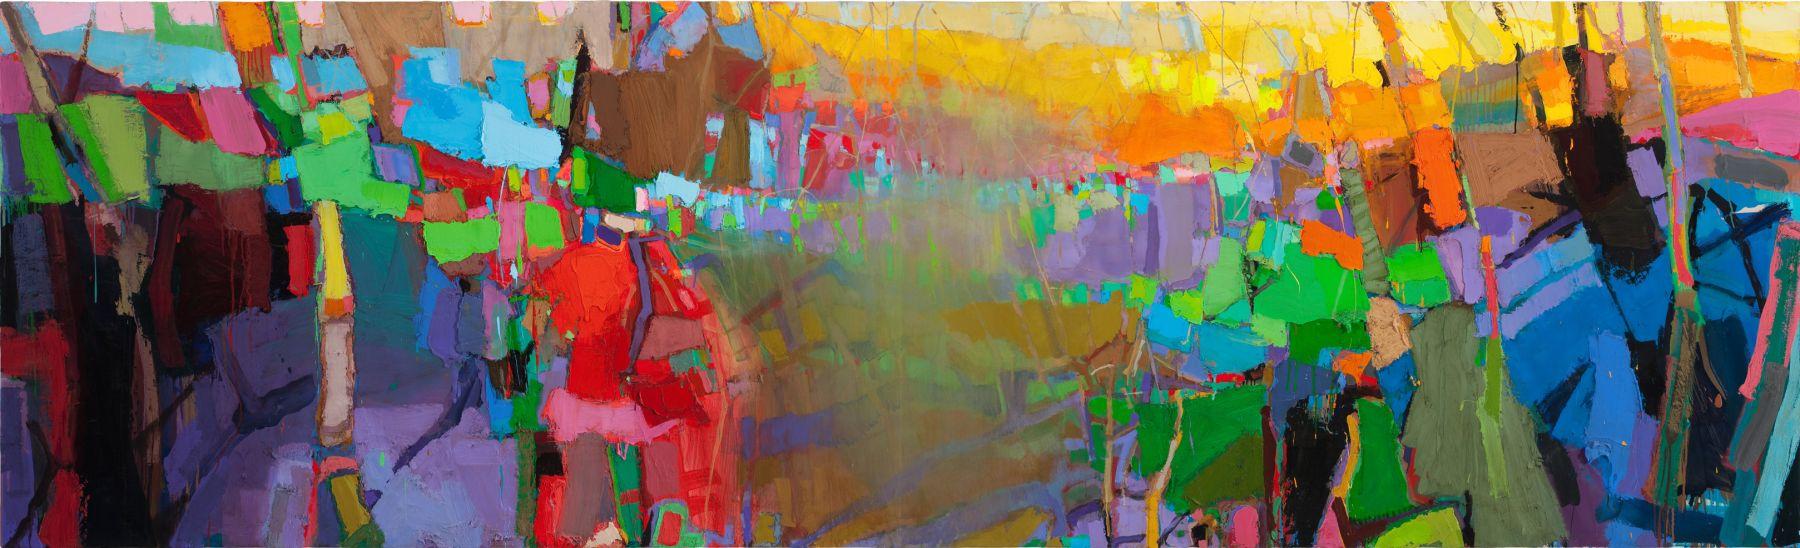 Brian Rutenberg French Landscape (SOLD), 2010, oil on linen, 48 x 158 inches